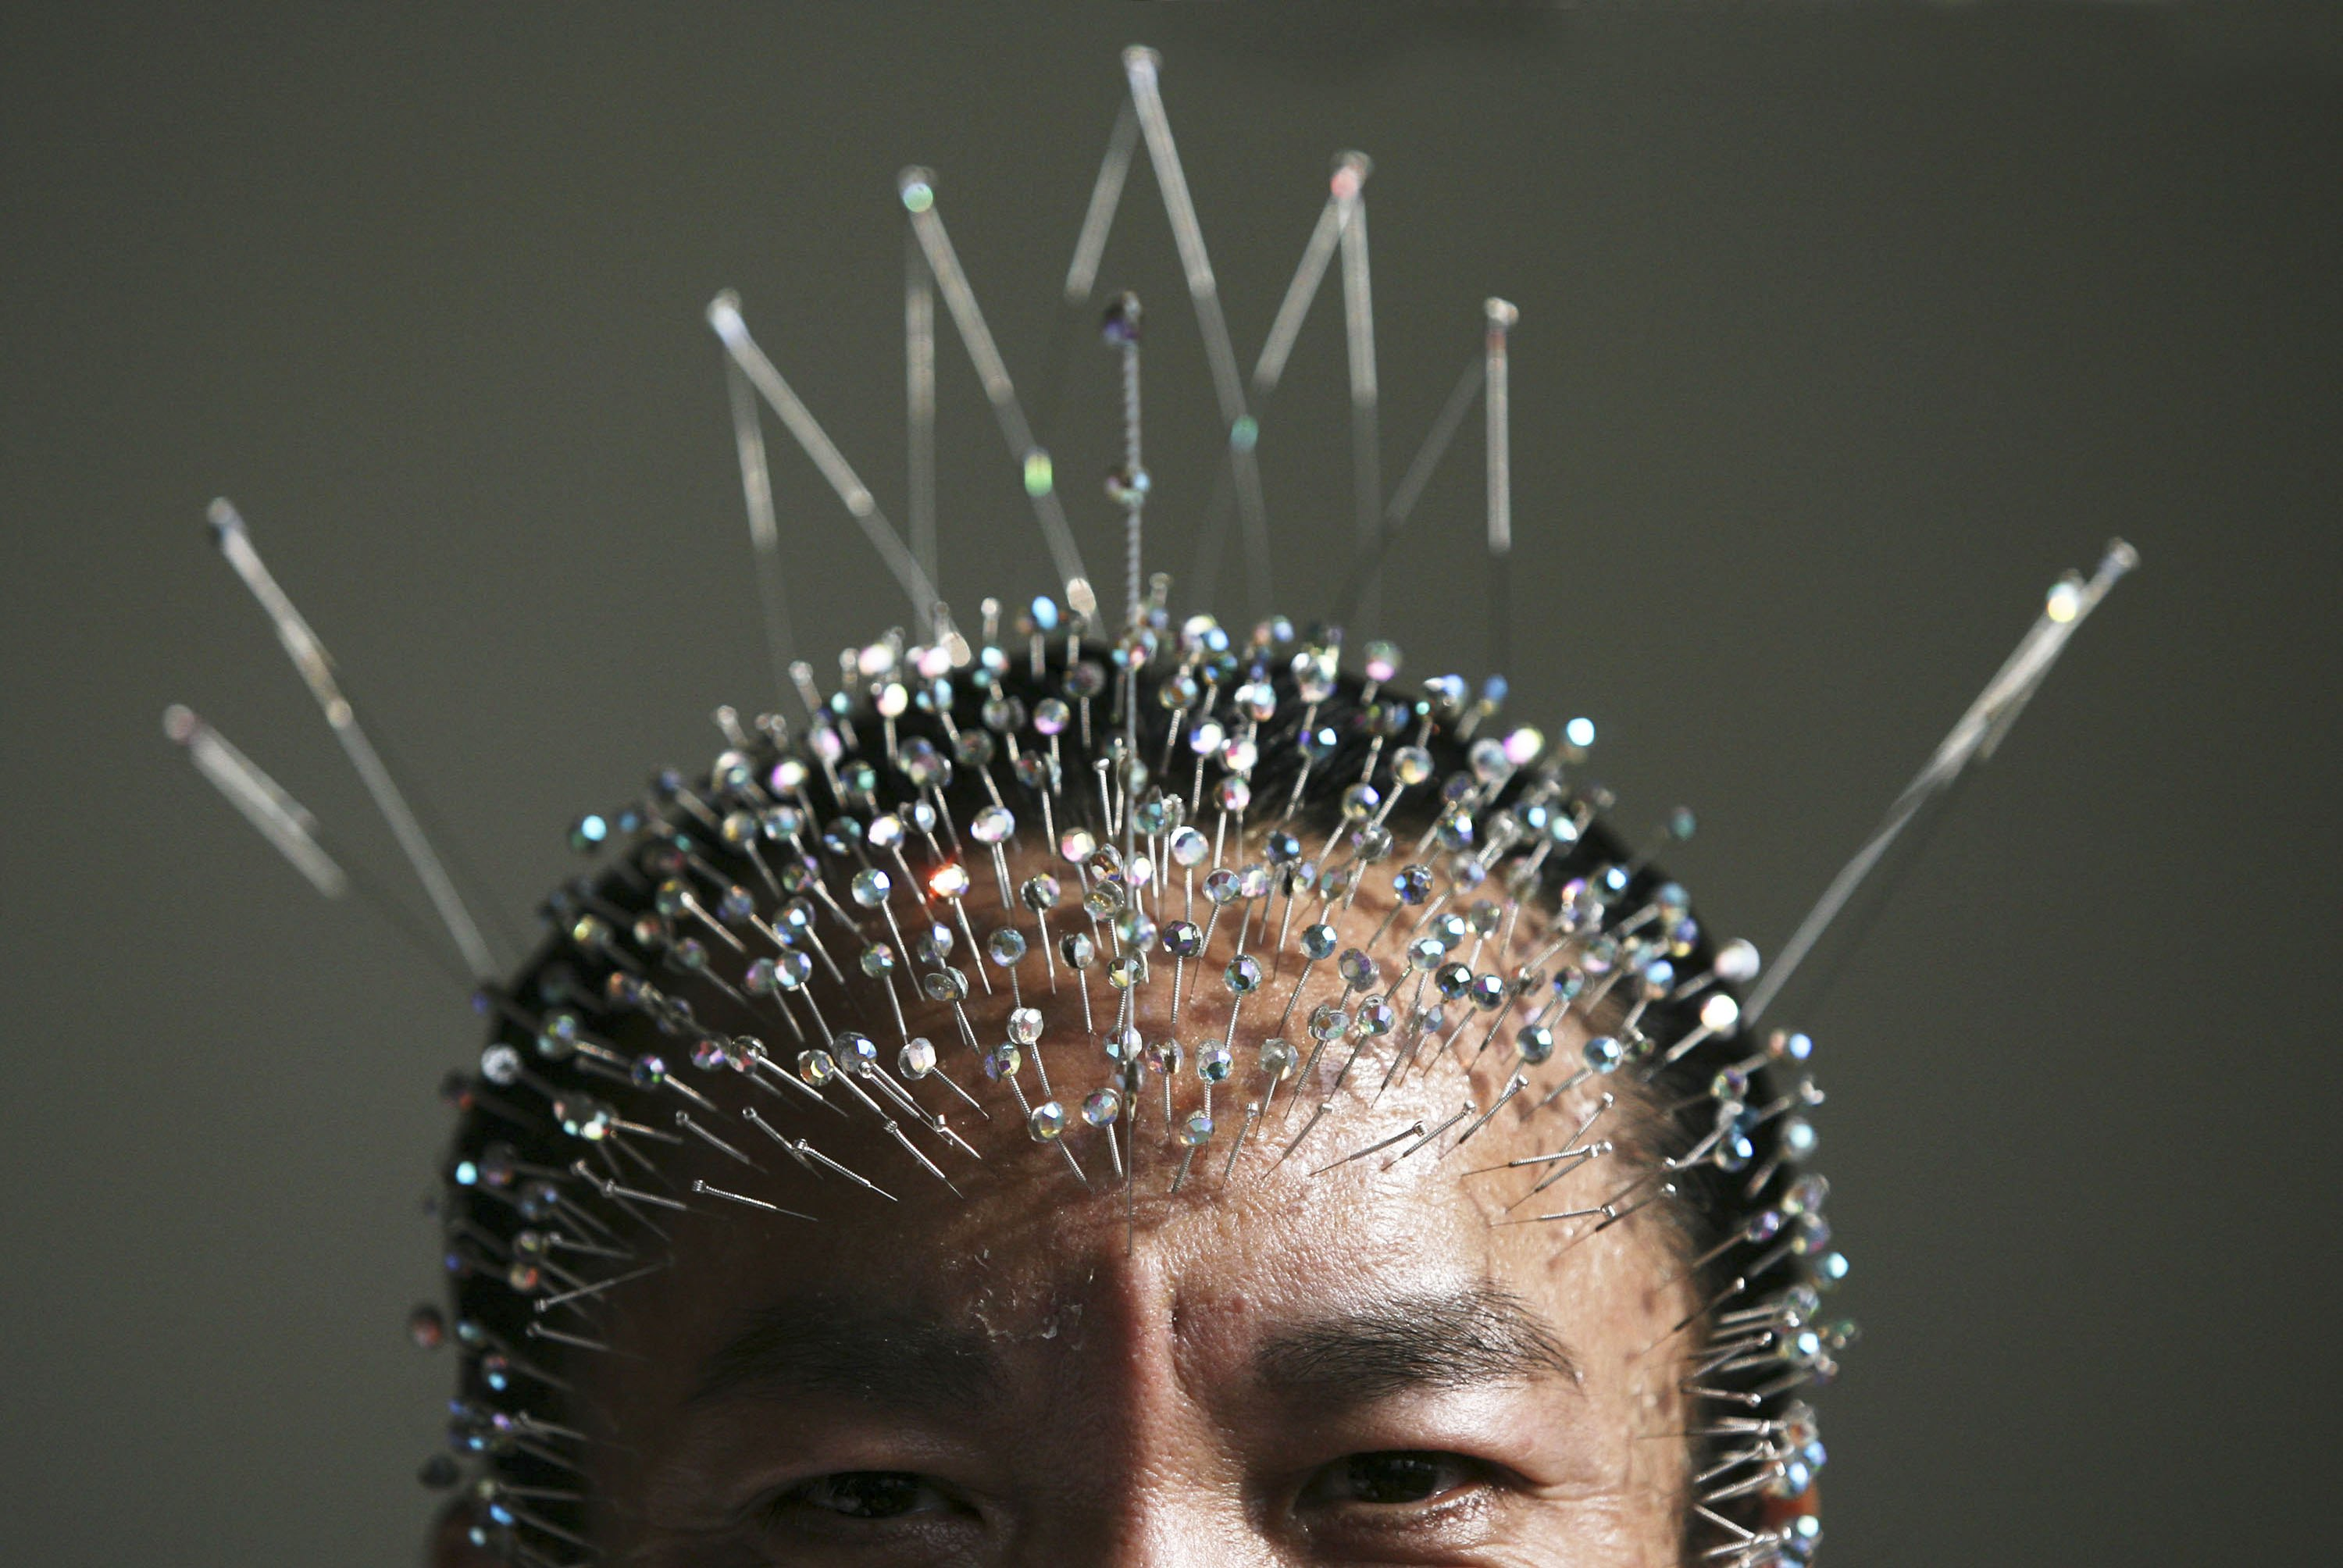 Does Acupuncture Work by Re-Mapping the Brain? | Big Think